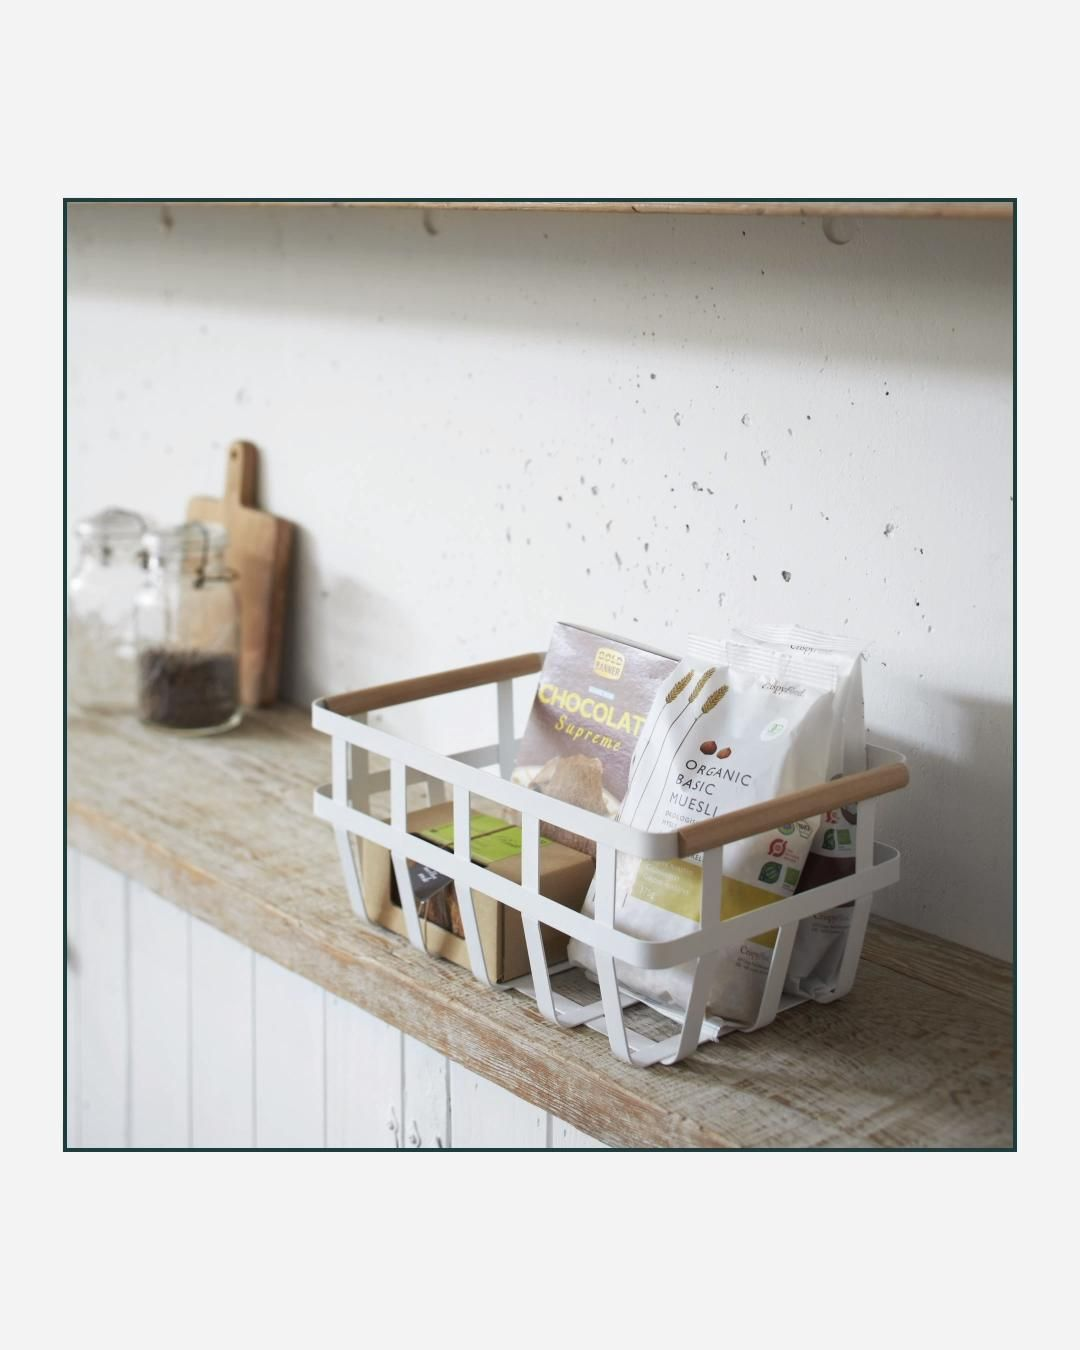 This simple, sturdy basket makes itself useful anywhere in the home, keeping loose items tidy, upright and protected.